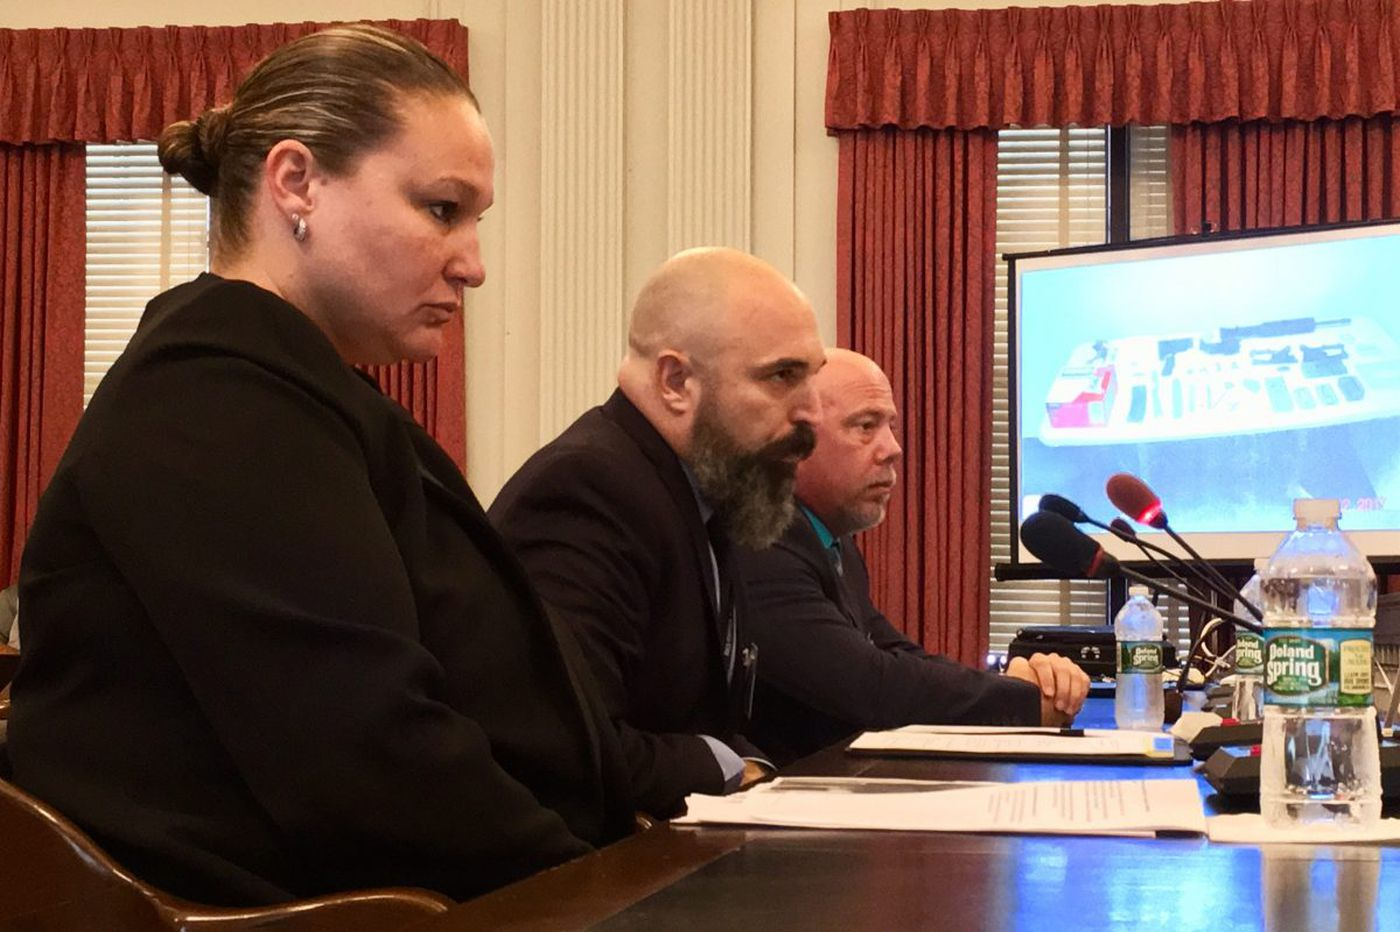 N.J. street gangs are using younger teens, guns, and extreme violence, experts say